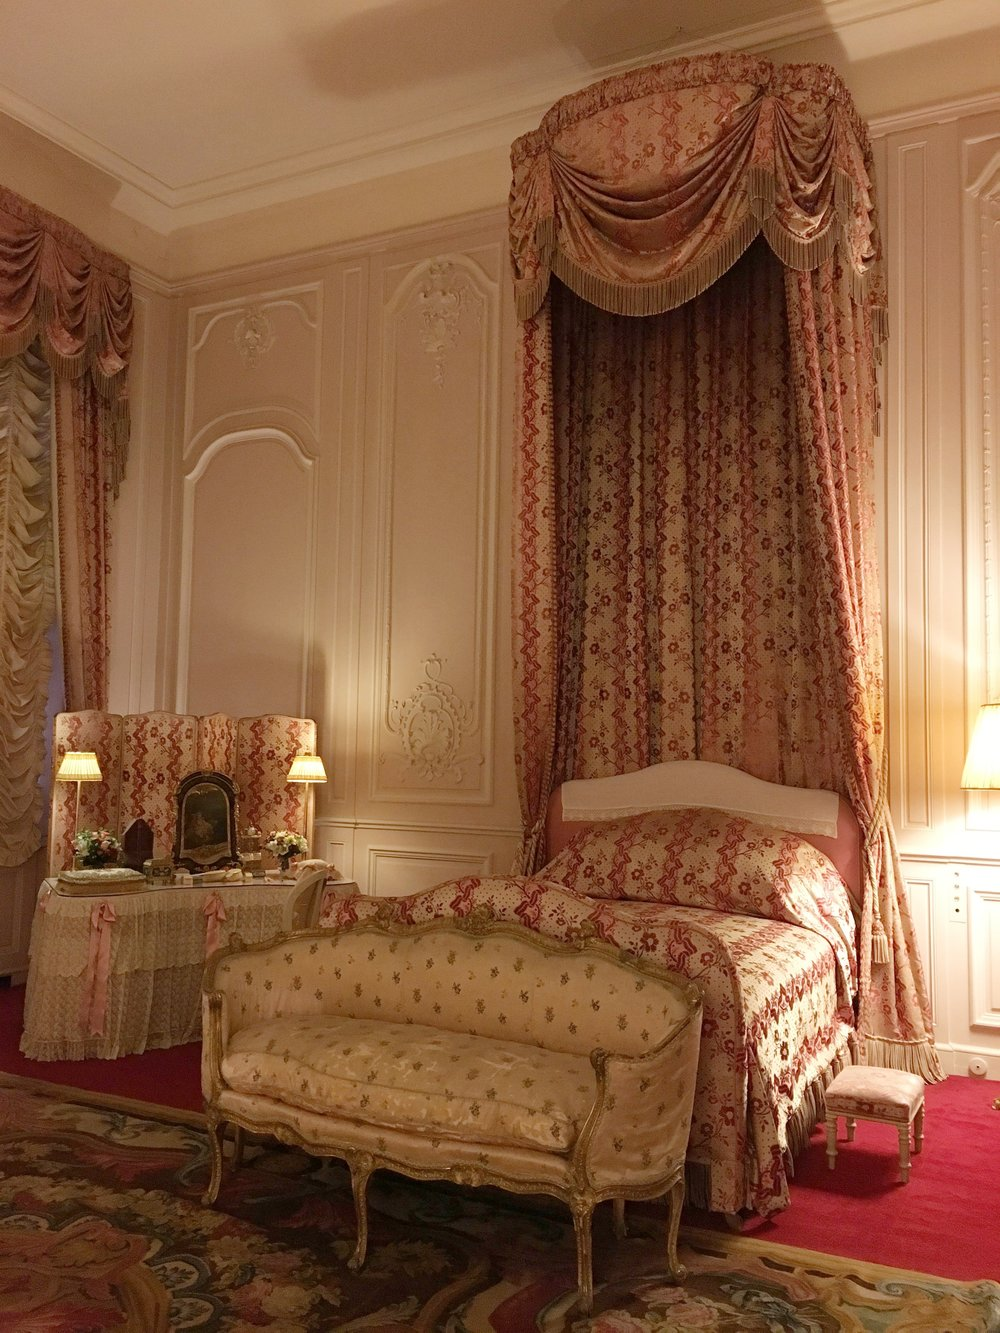 UK Waddesdon Manor guest room National Trust French Chateau Rothschild Buckinghamshire garden chateau Eileen Hsieh Follow That Bug .jpg